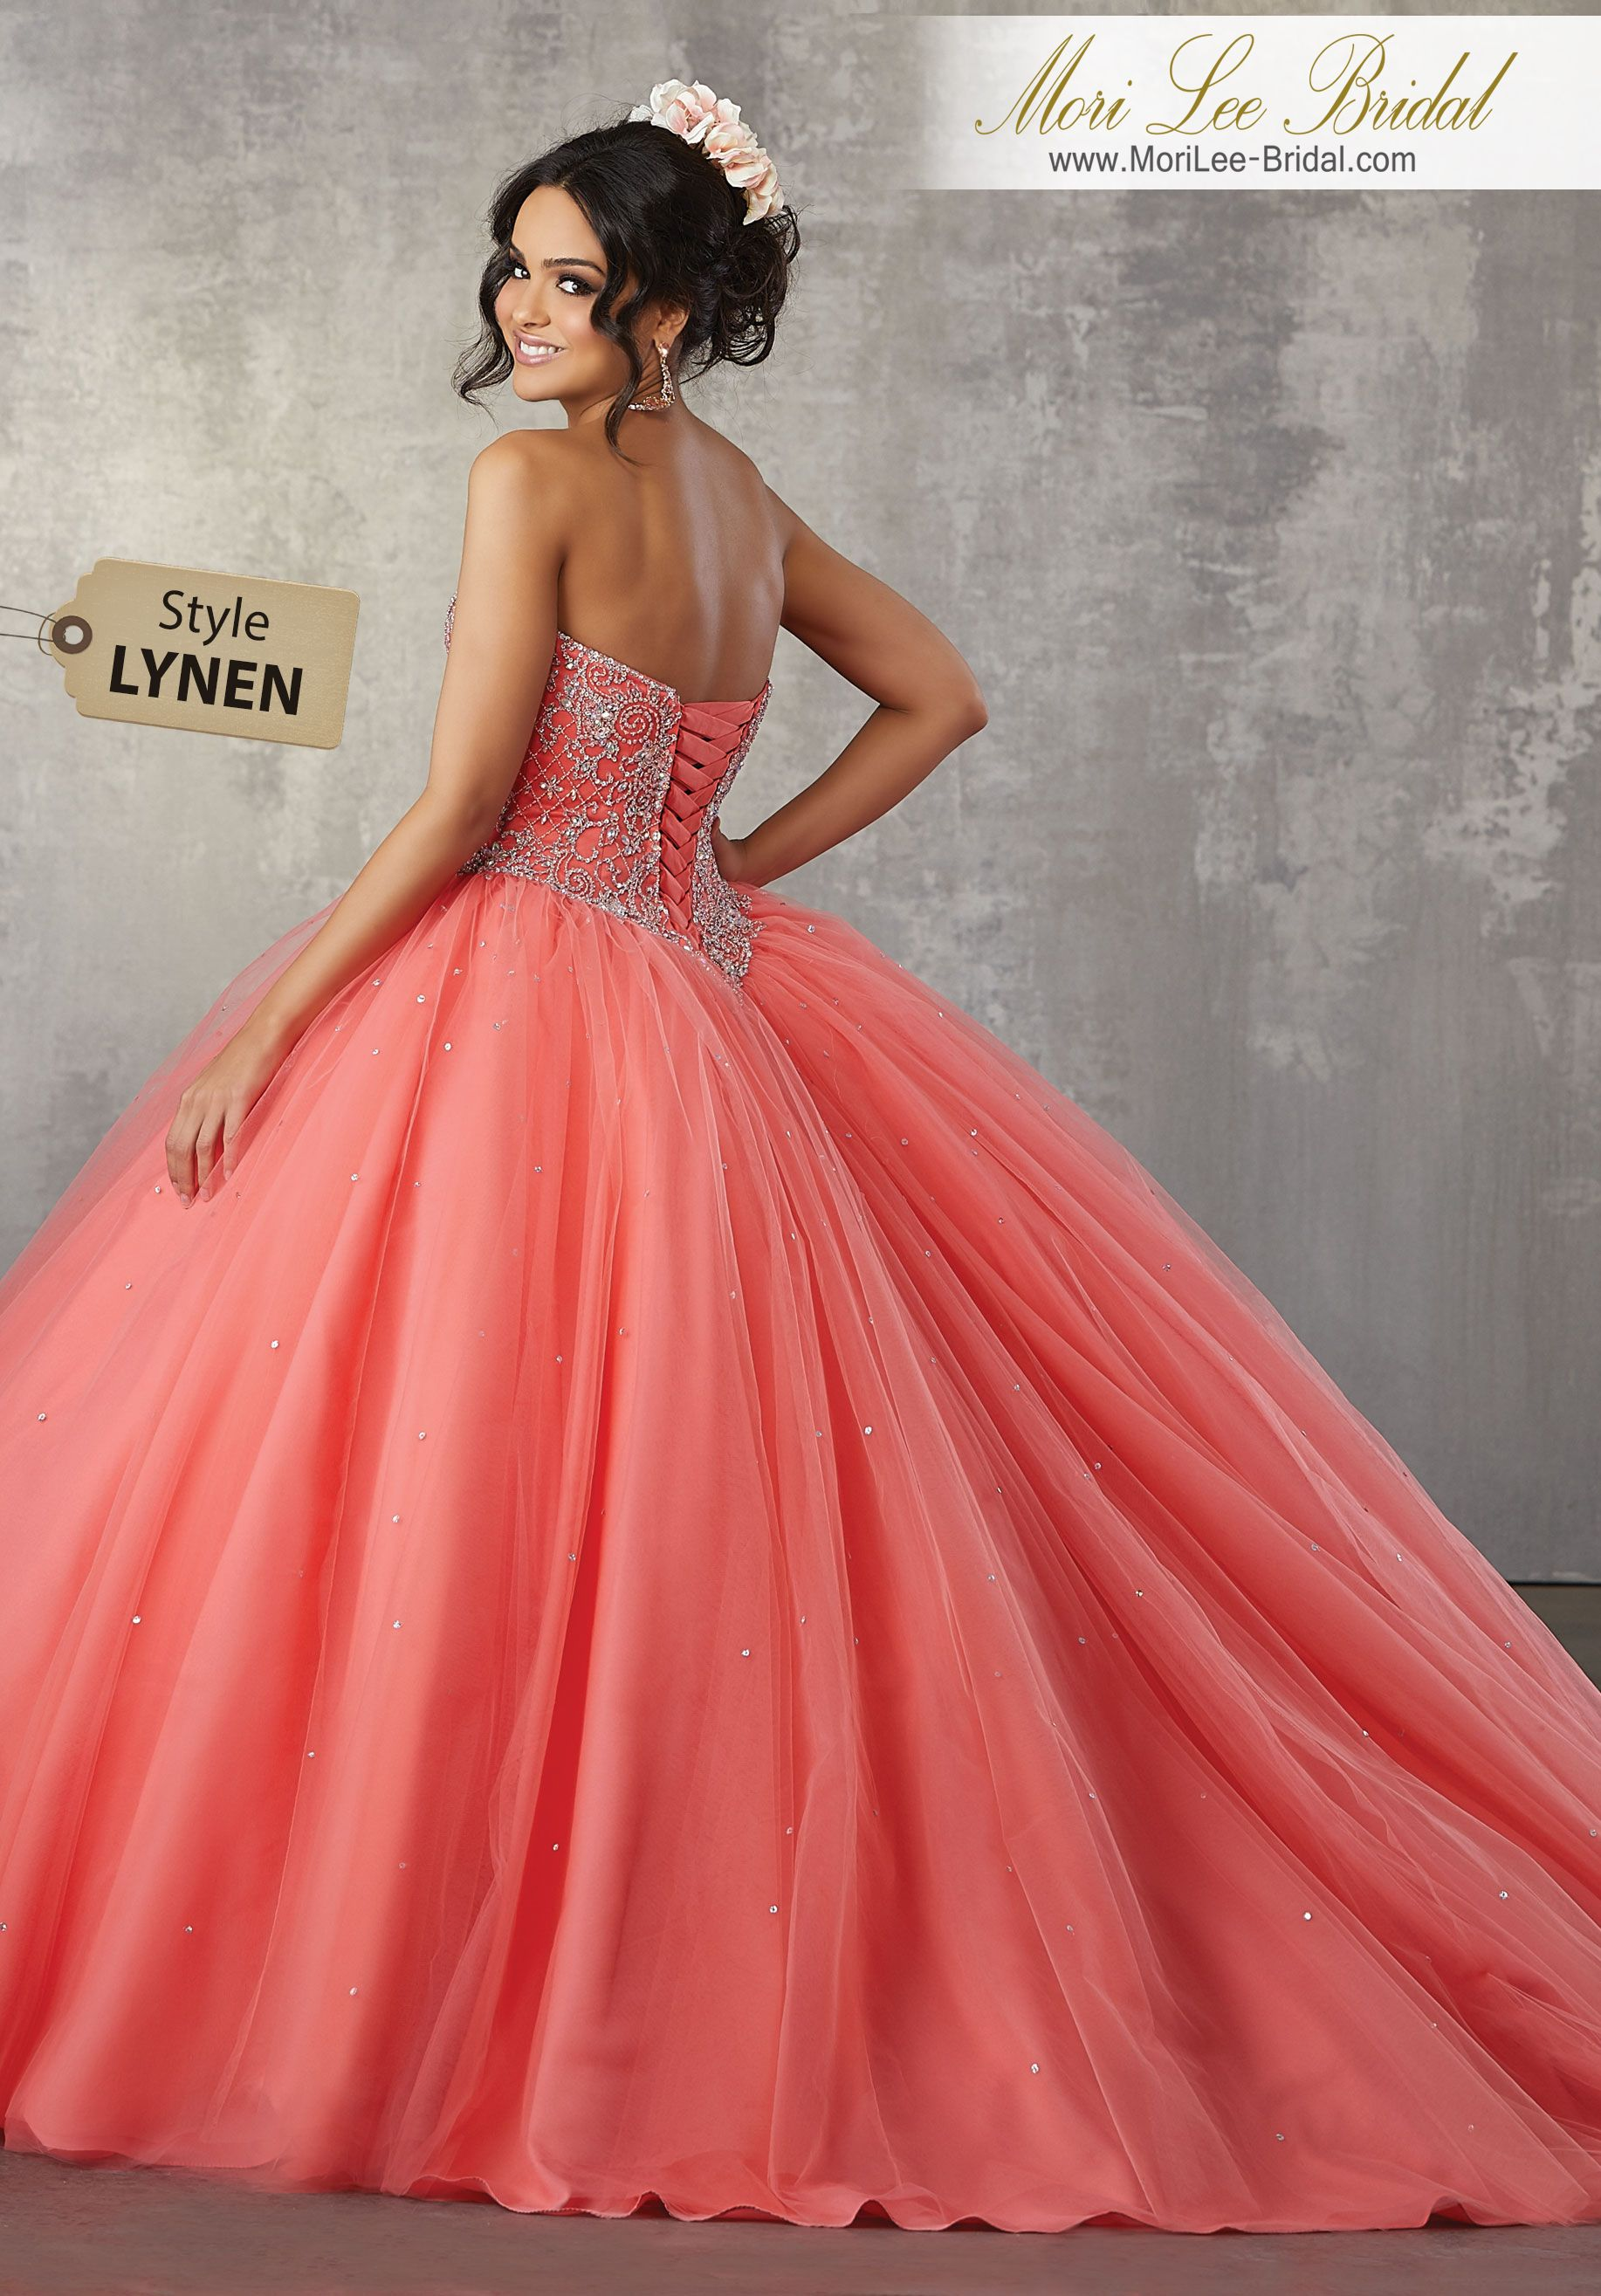 e16fc1c47a Style LYNEN Rhinestone and Crystal Beaded Bodice on a Tulle Ballgown  Princess Perfect